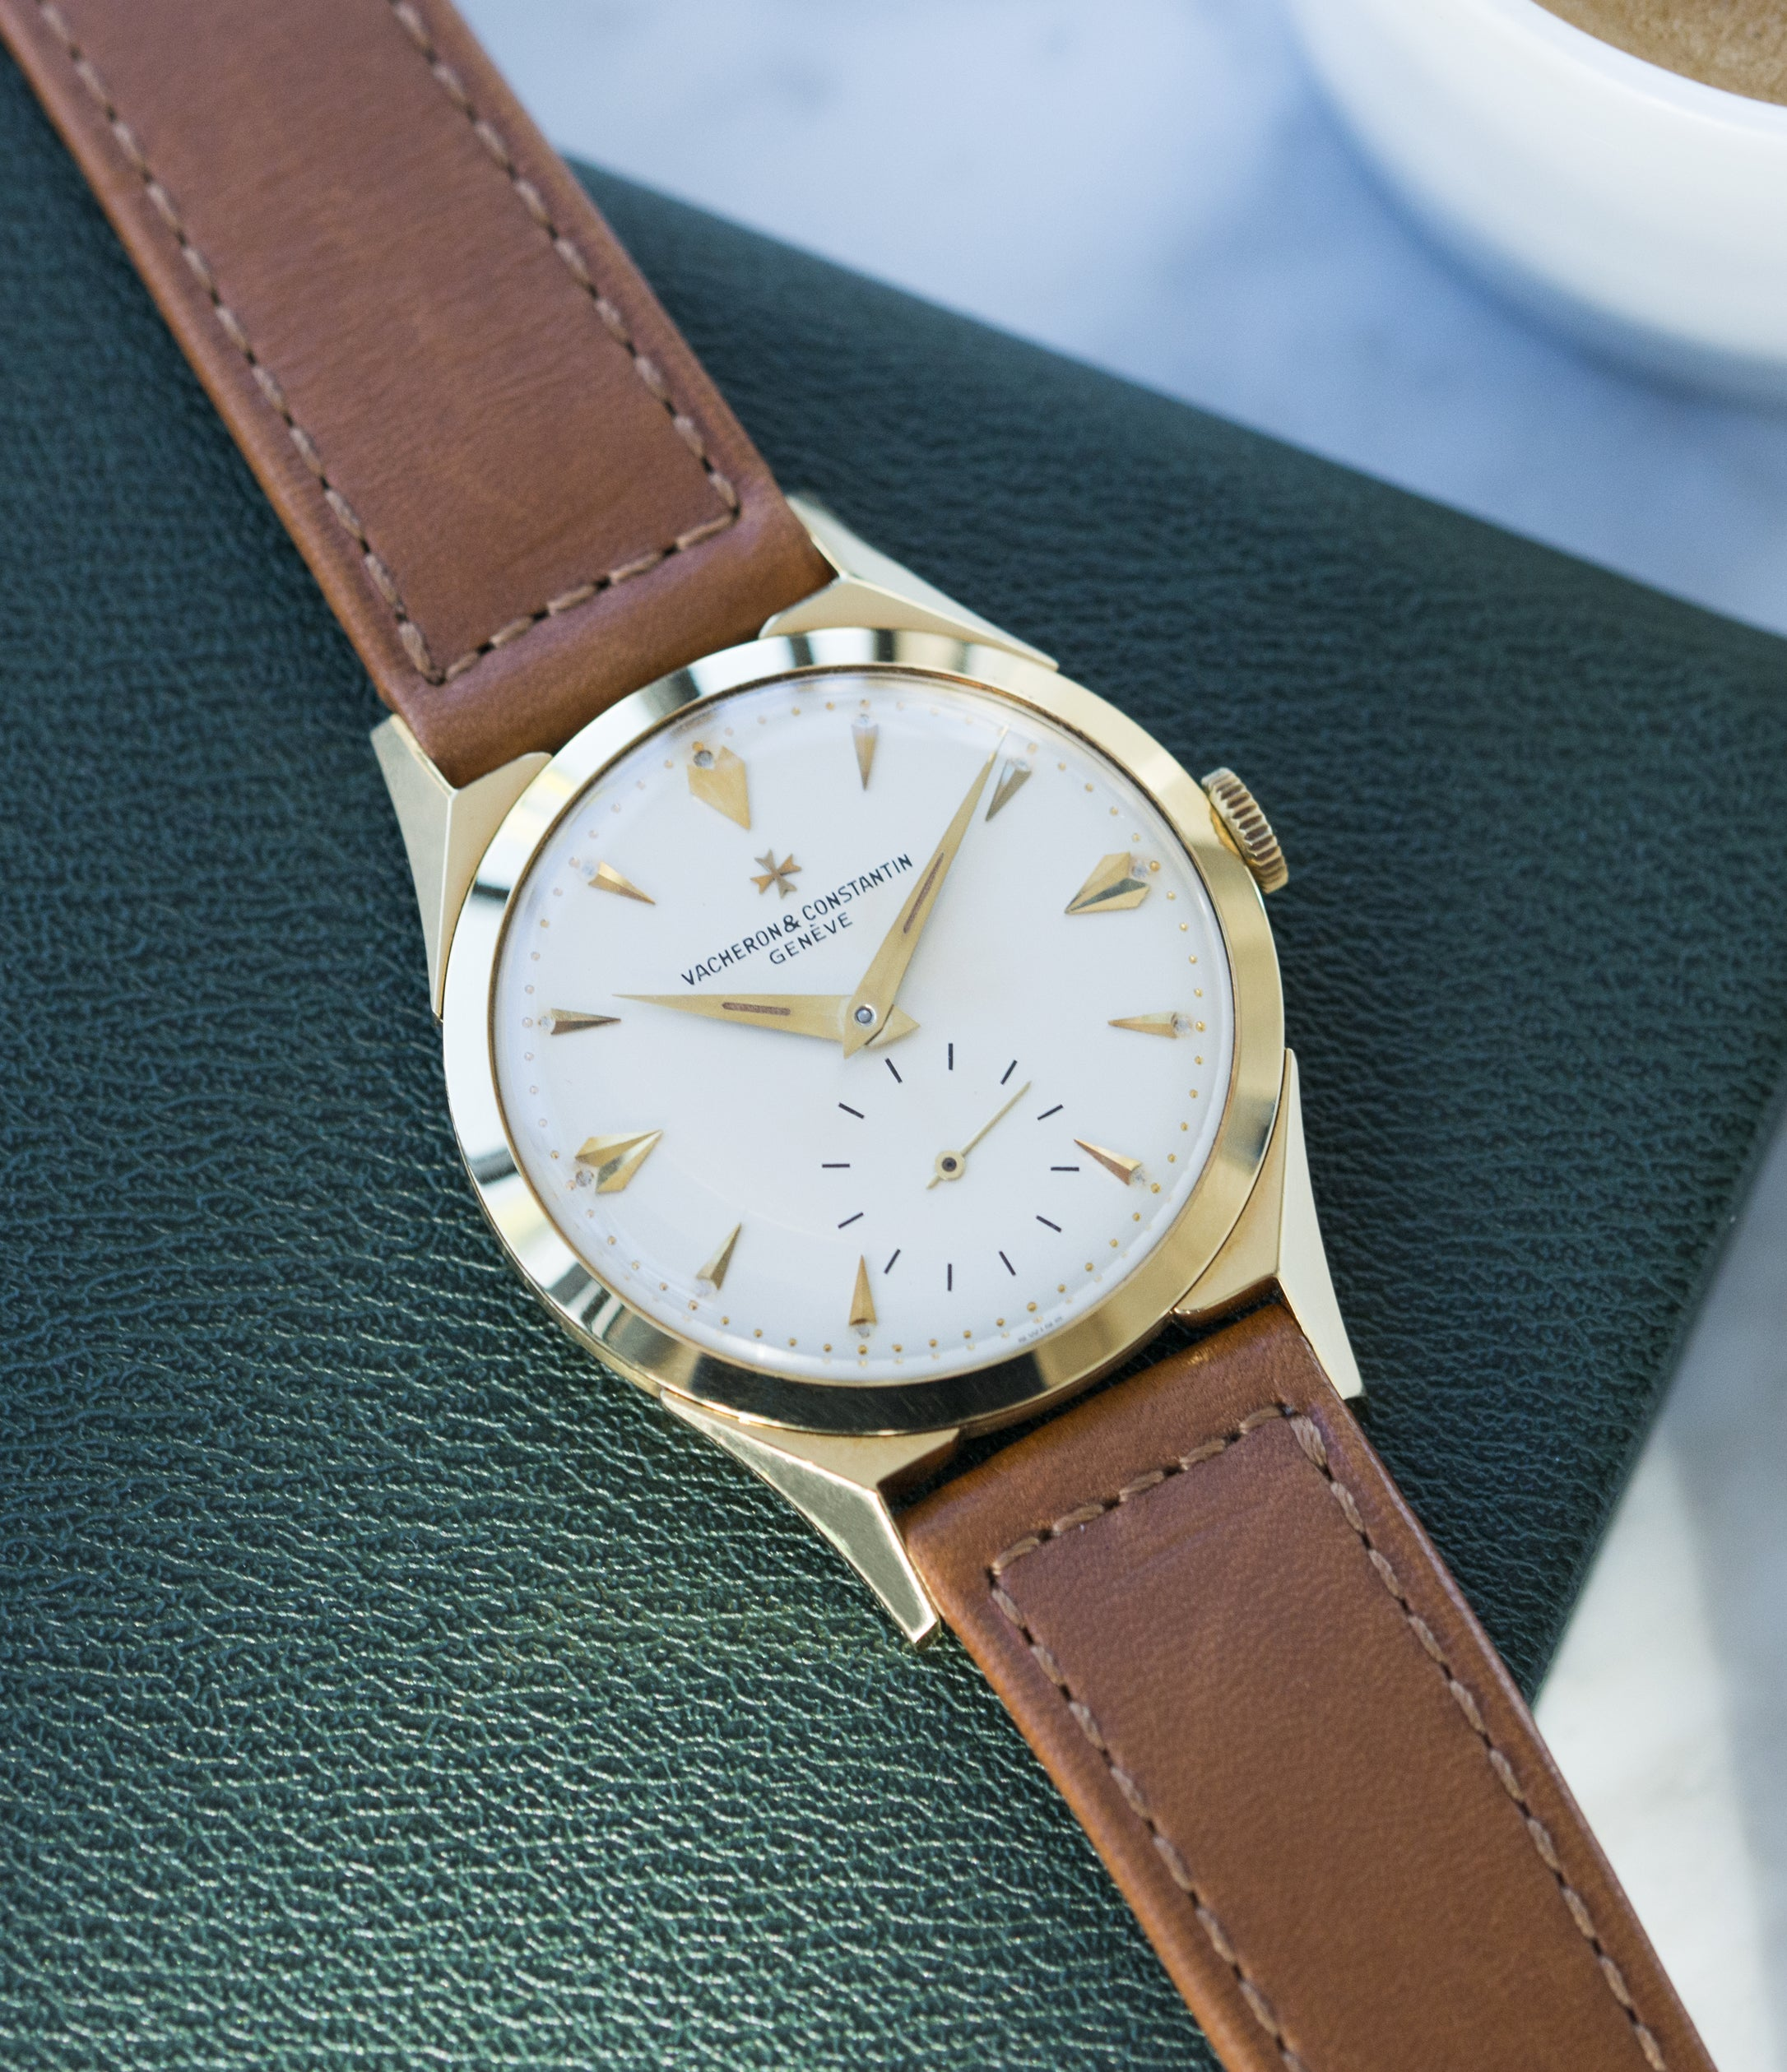 vintage Vacheron Constantin 6066 yellow gold time-only dress watch for sale online at A Collected Man London UK specialist of rare watches